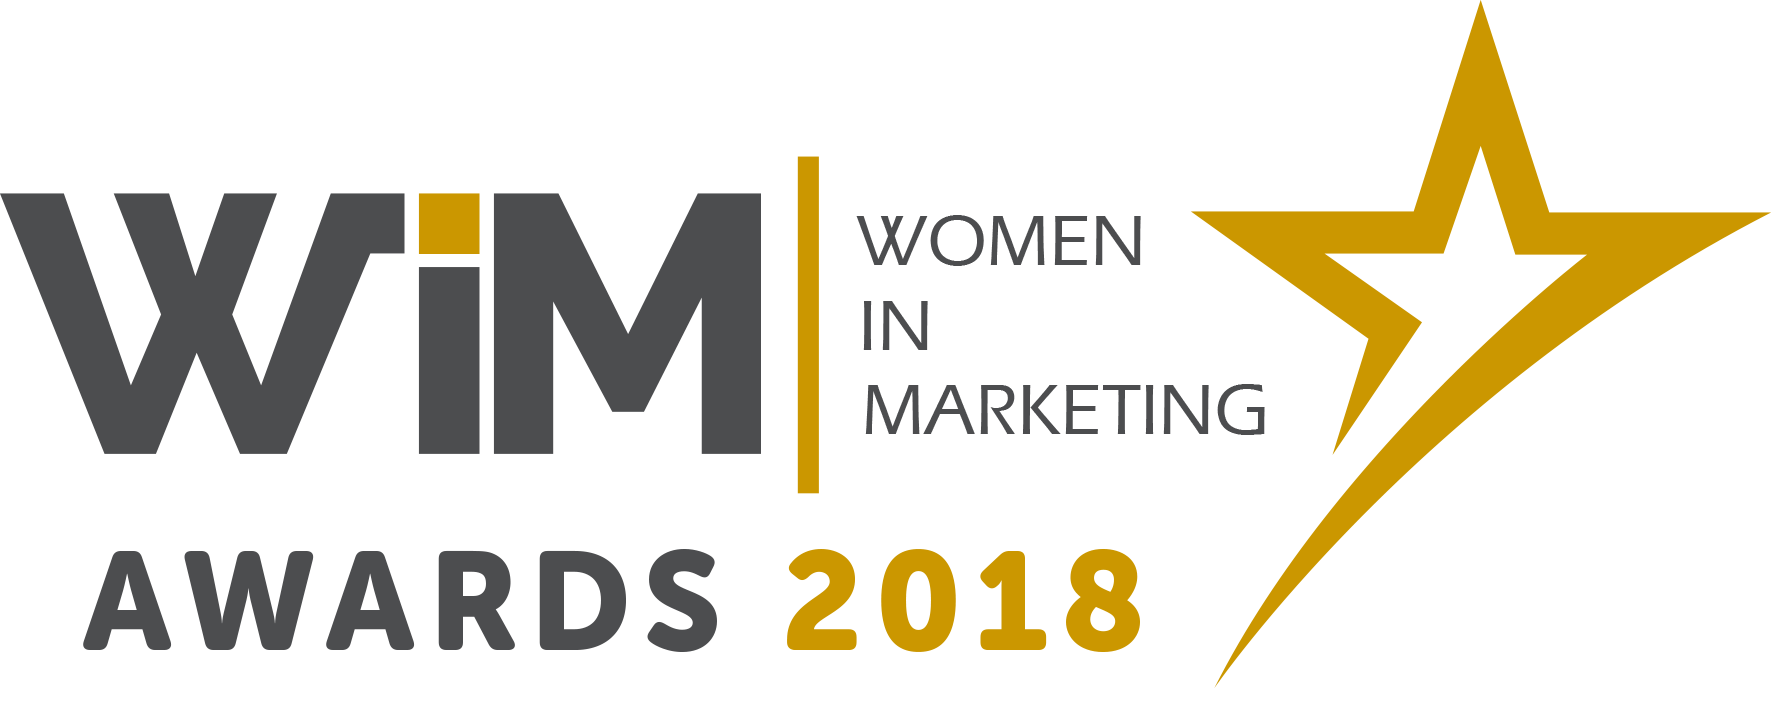 The 8th Annual Women in Marketing Awards - Open To Global Entries